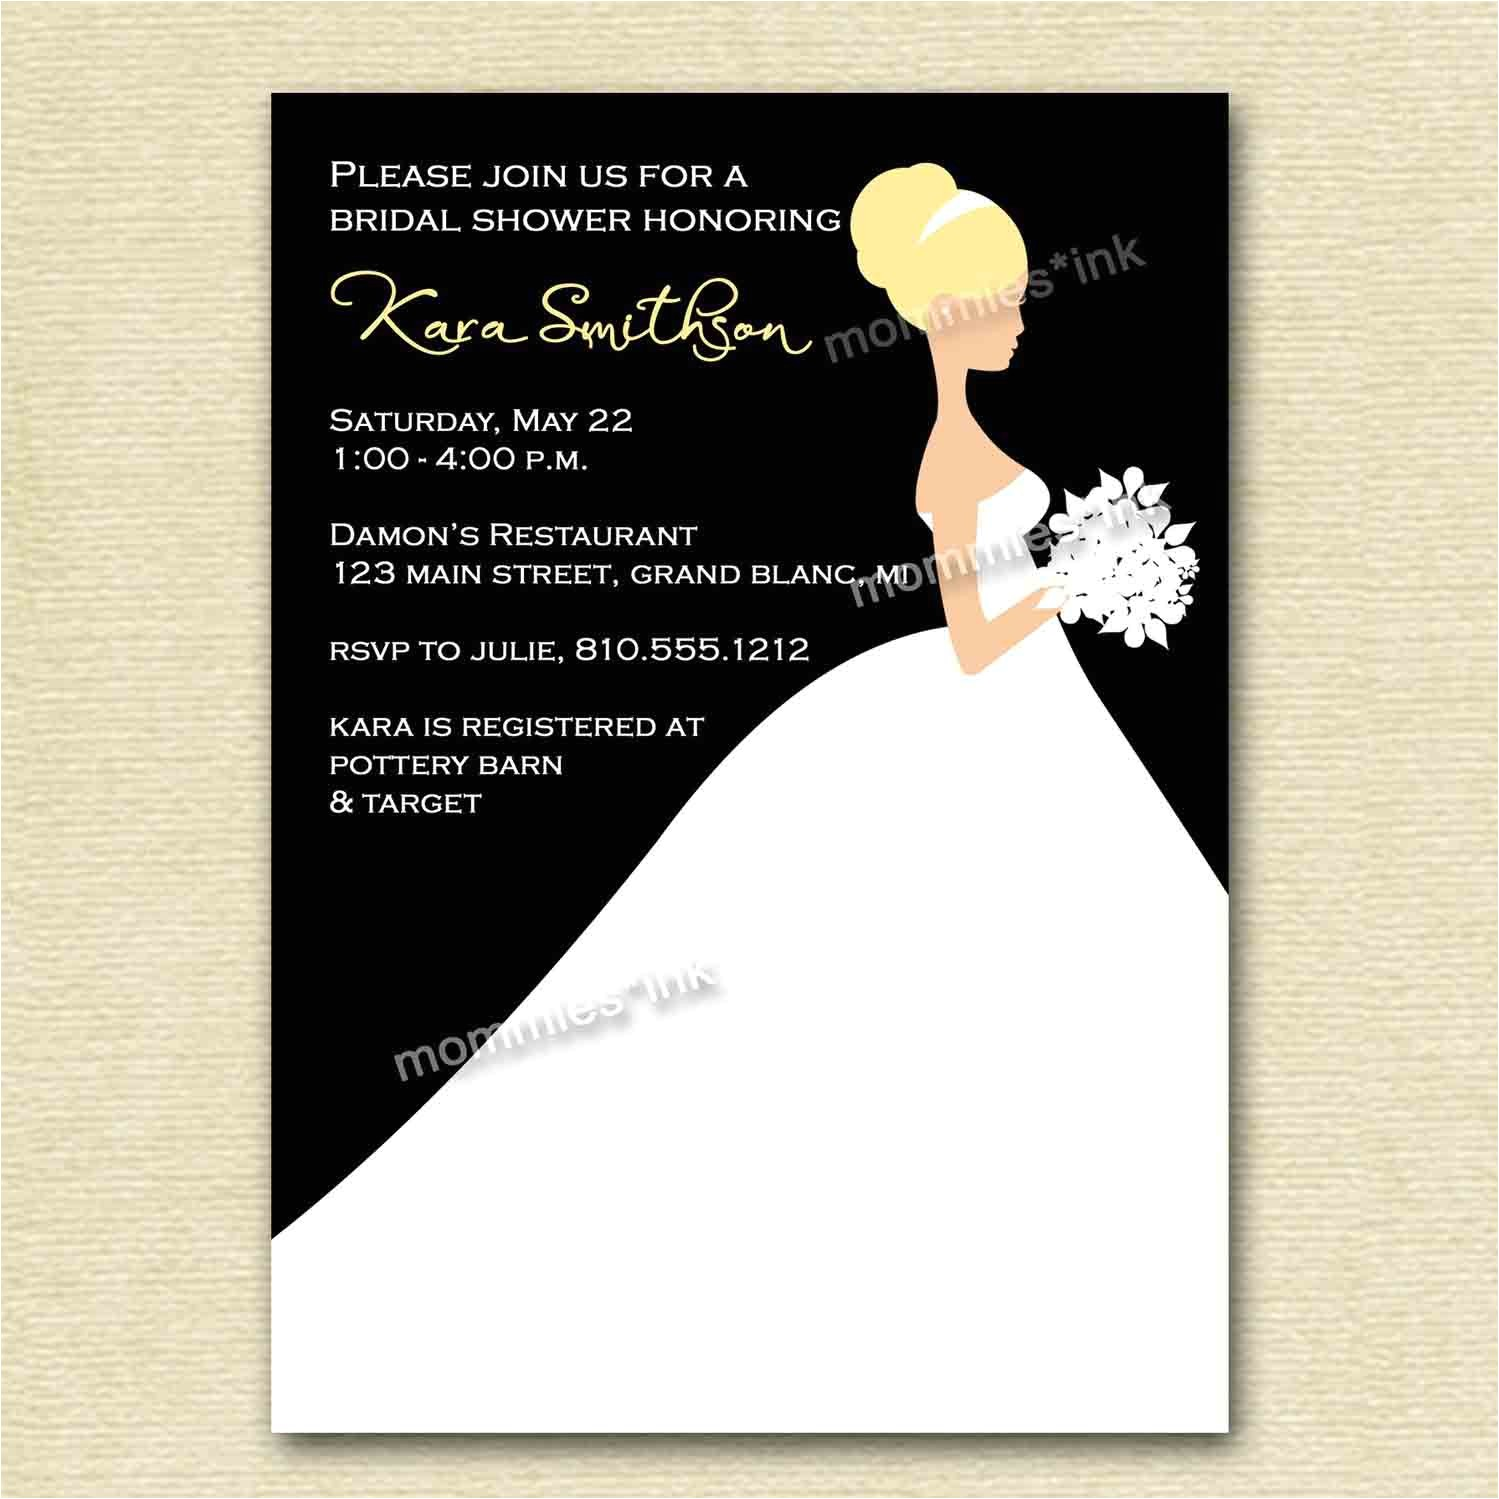 Create Your Own Bridal Shower Invitations Bridal Shower Invitations Bridal Shower Invitation Cards